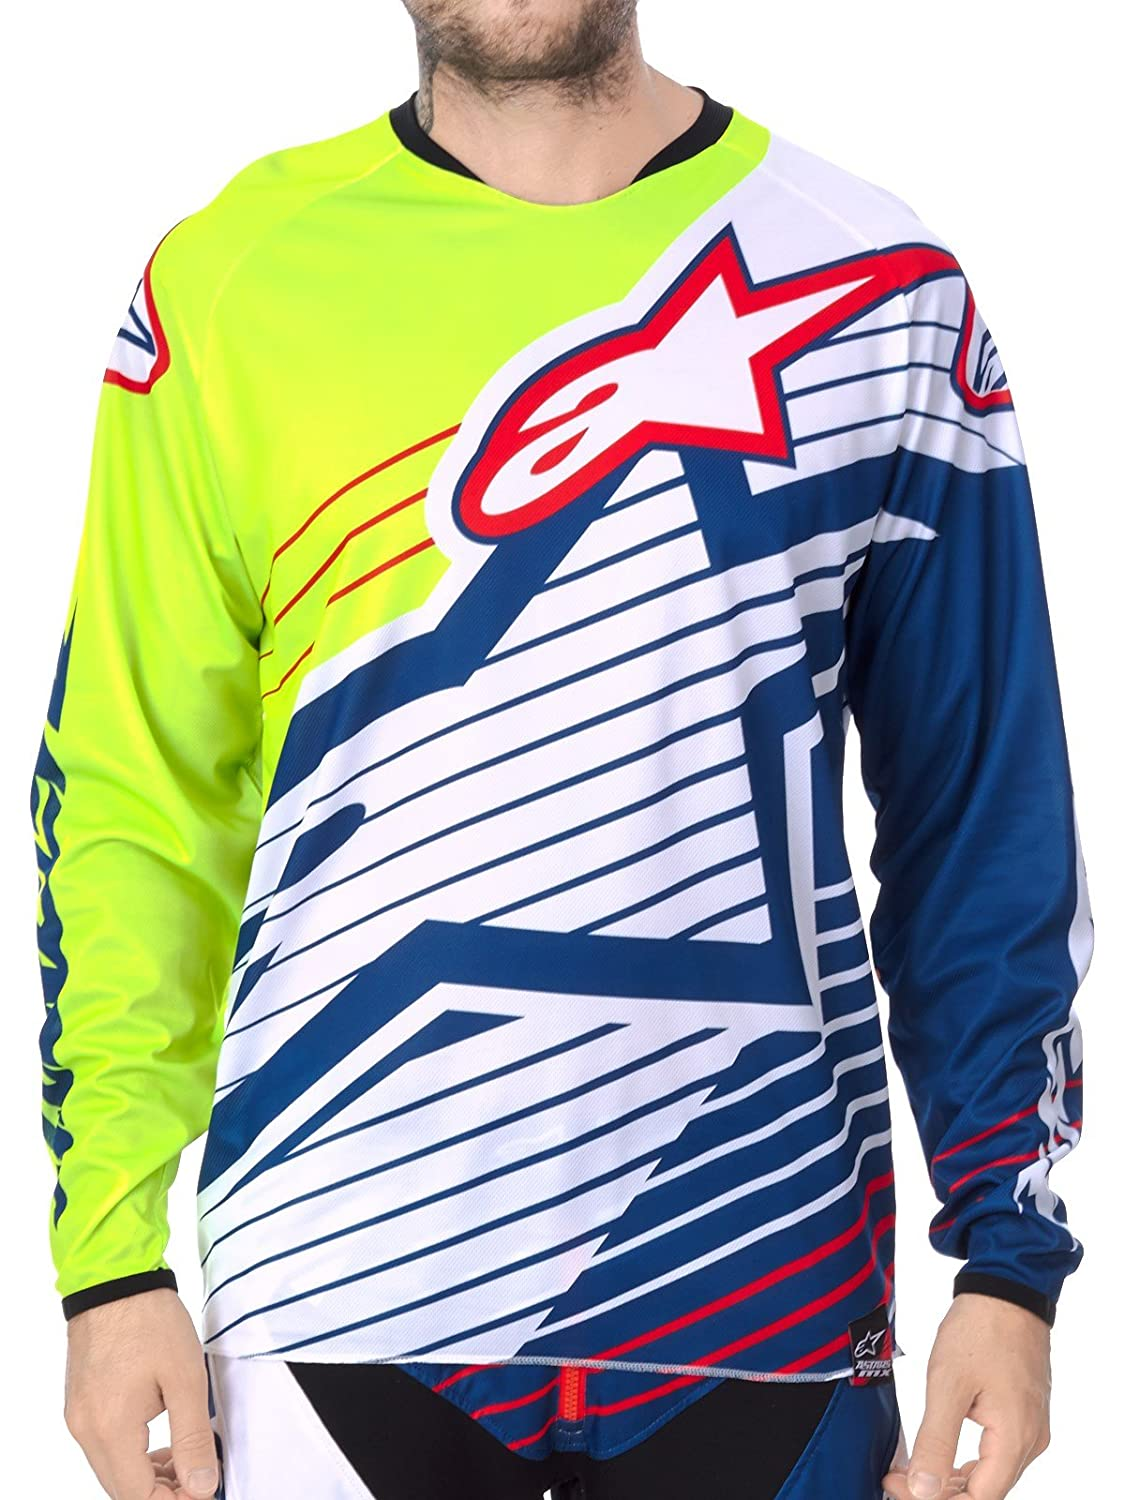 717564b60cd061 Motorcycle Alpinestars Racer Braap Jersey White Yellow Blue XXL UK Seller   alpinestars  Amazon.co.uk  Sports   Outdoors